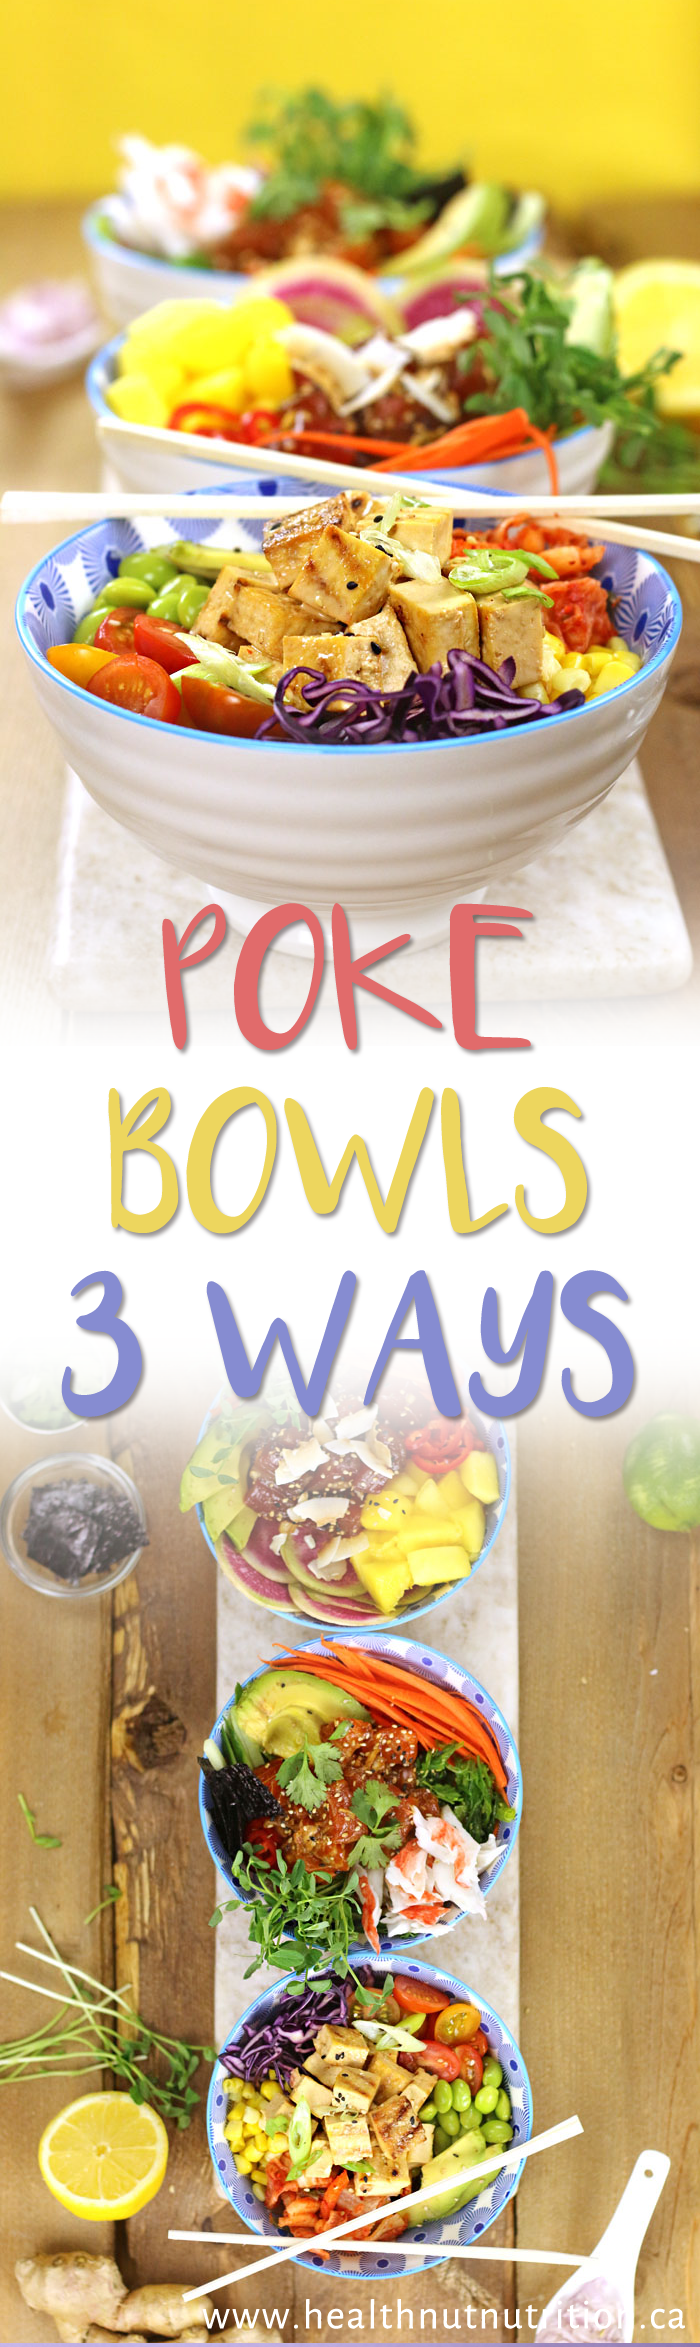 How to Build the PERFECT POKE BOWL - 3 WAYS!